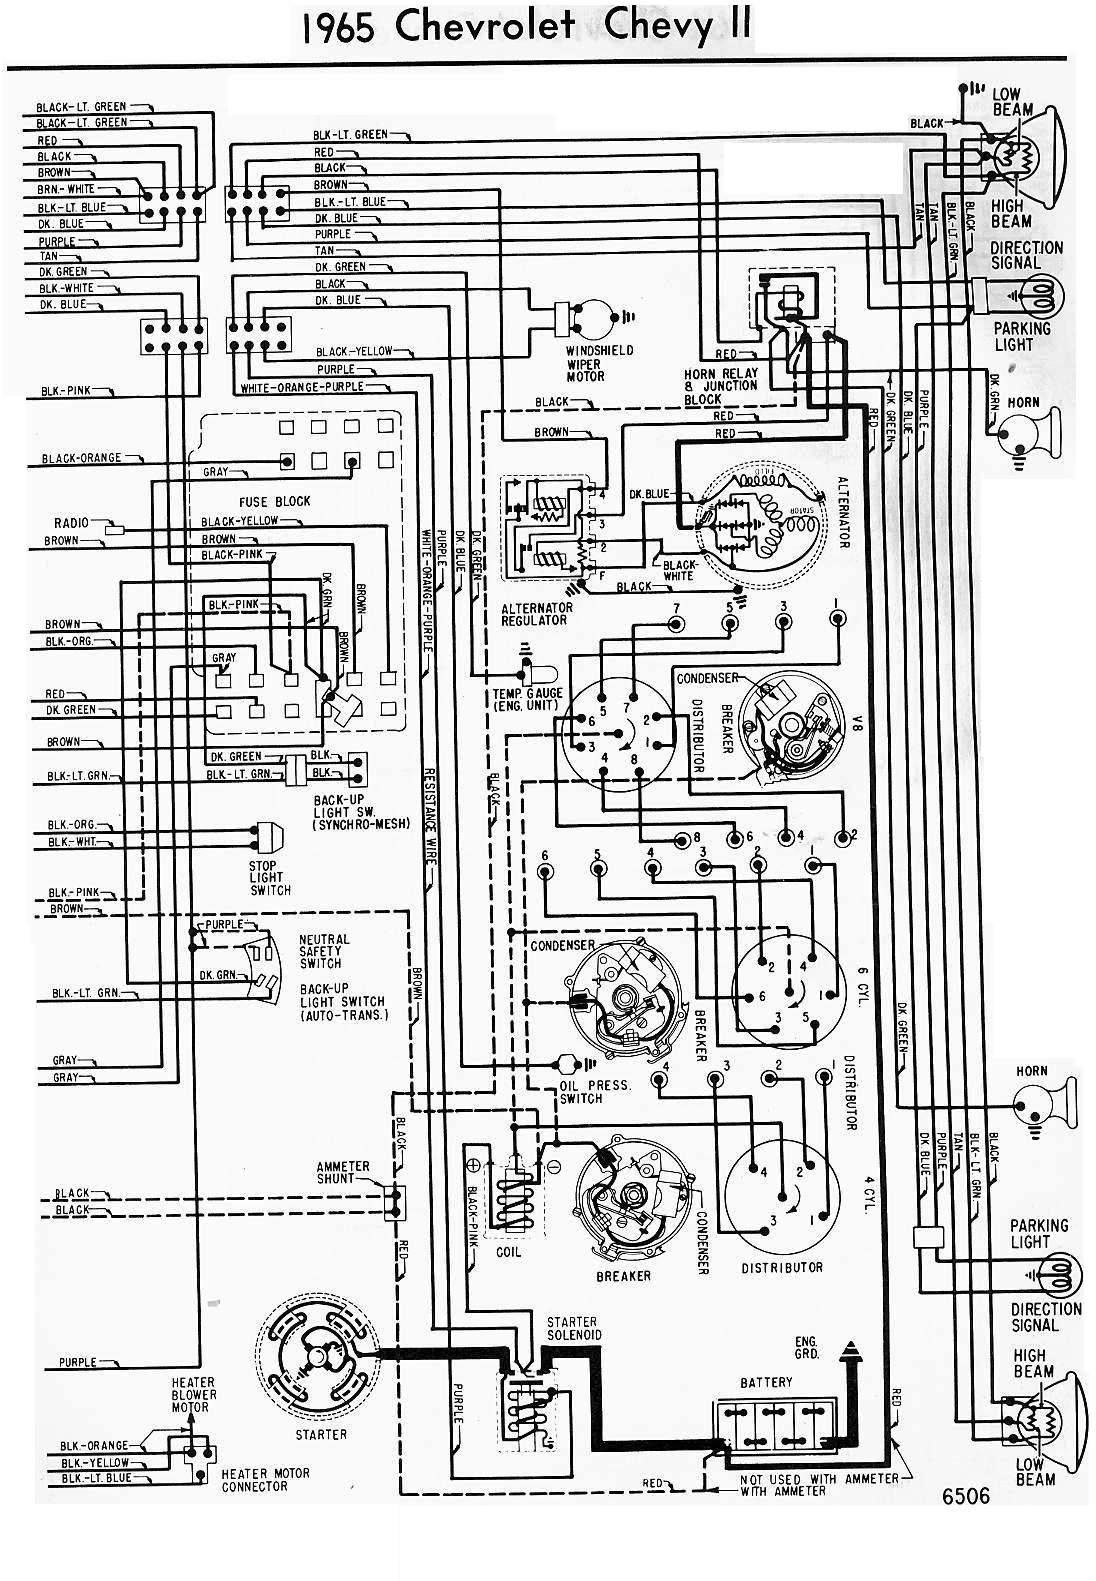 1964 chevy ii wiring diagram: 1964 chevy impala ignition wiring  diagramrh:svlc us